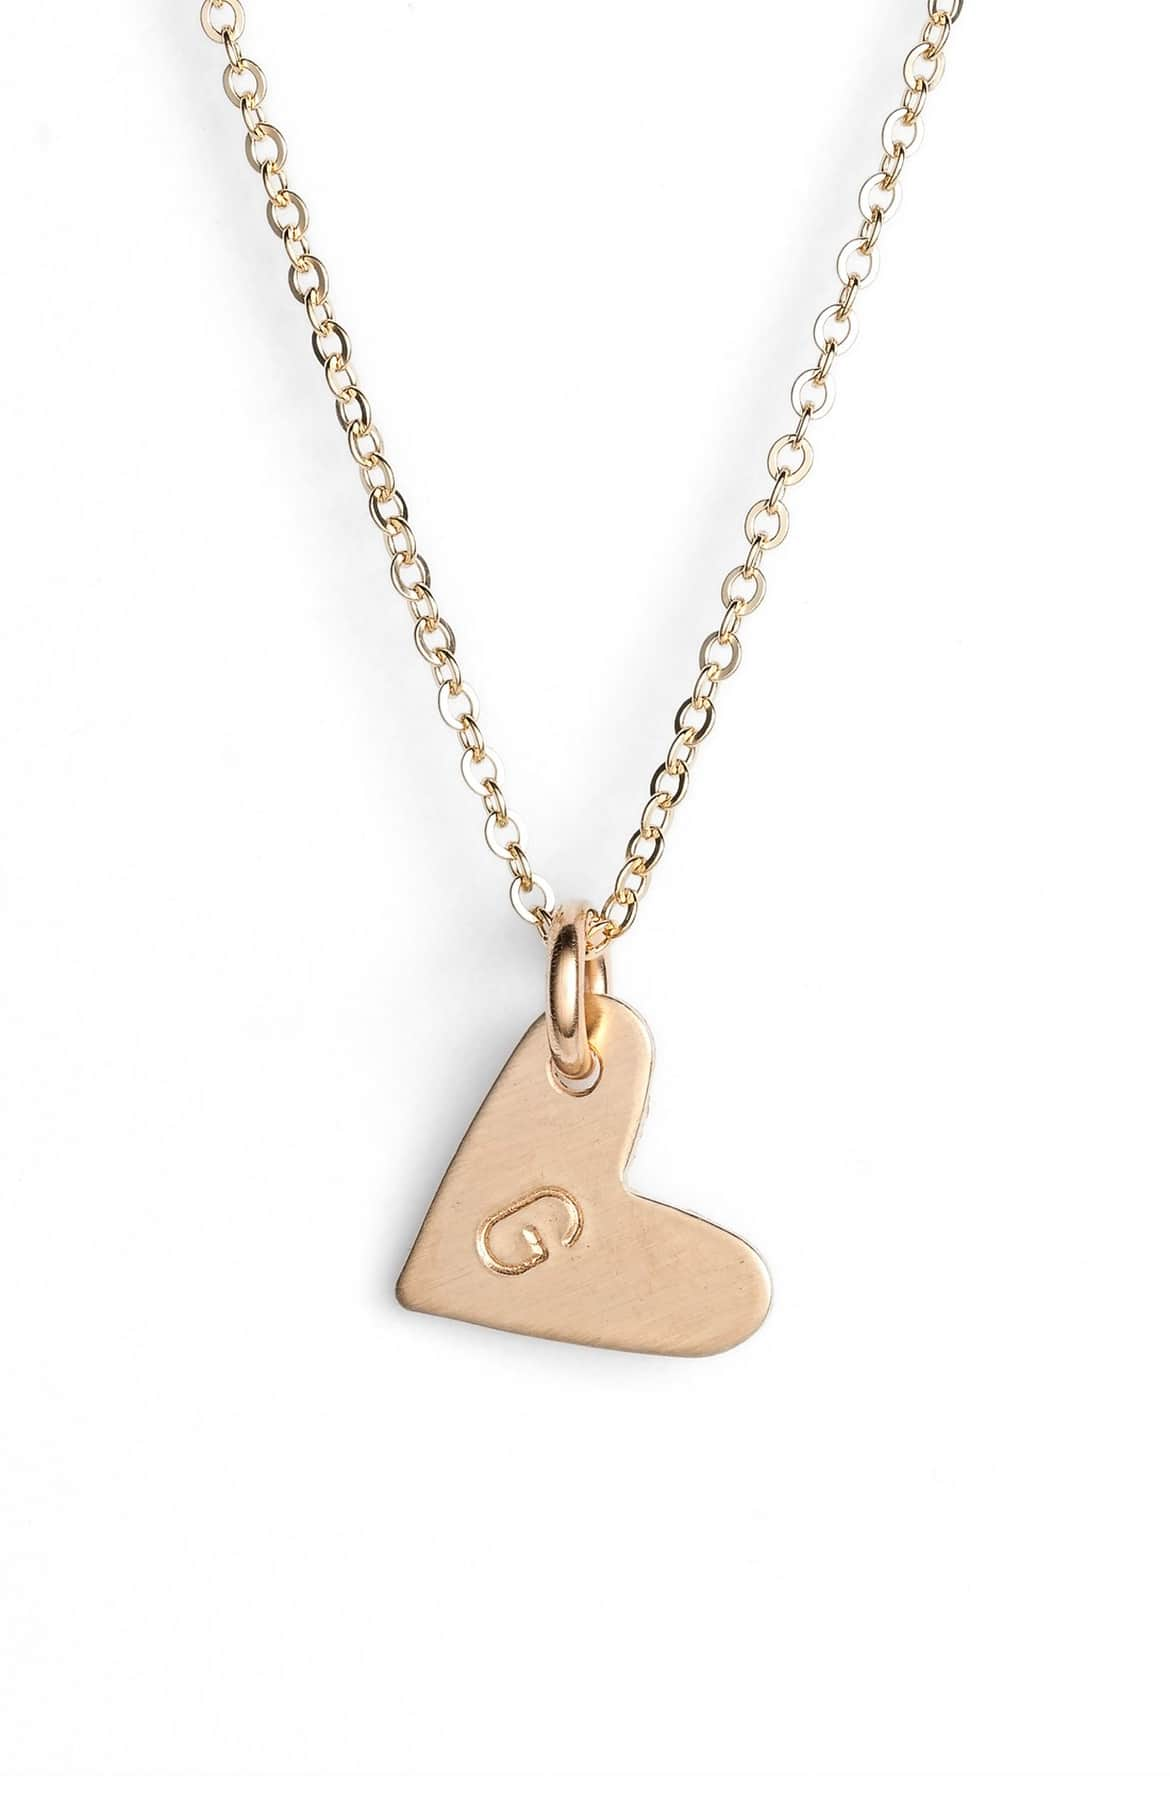 She will love this 14k-Gold Fill Initial Mini Heart Pendant Necklace. $45.00. Super sentimental.{ }(Image: Nordstrom){ }